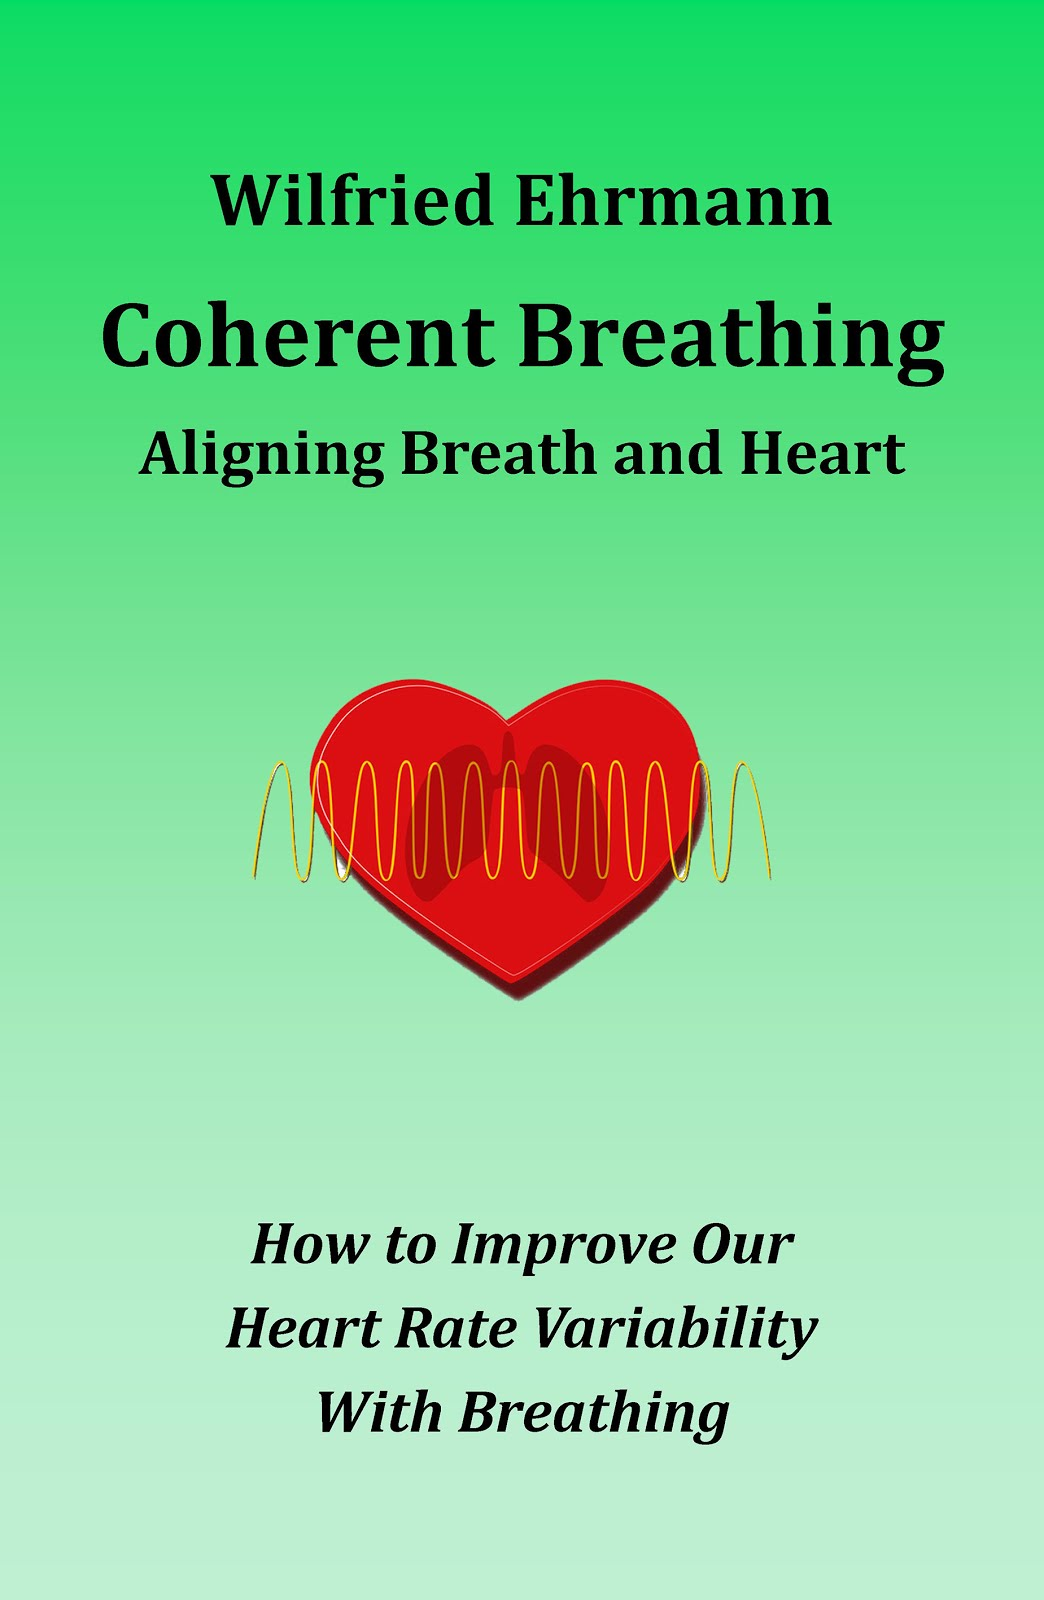 Coherent Breathing - Aligning Breath and Heart